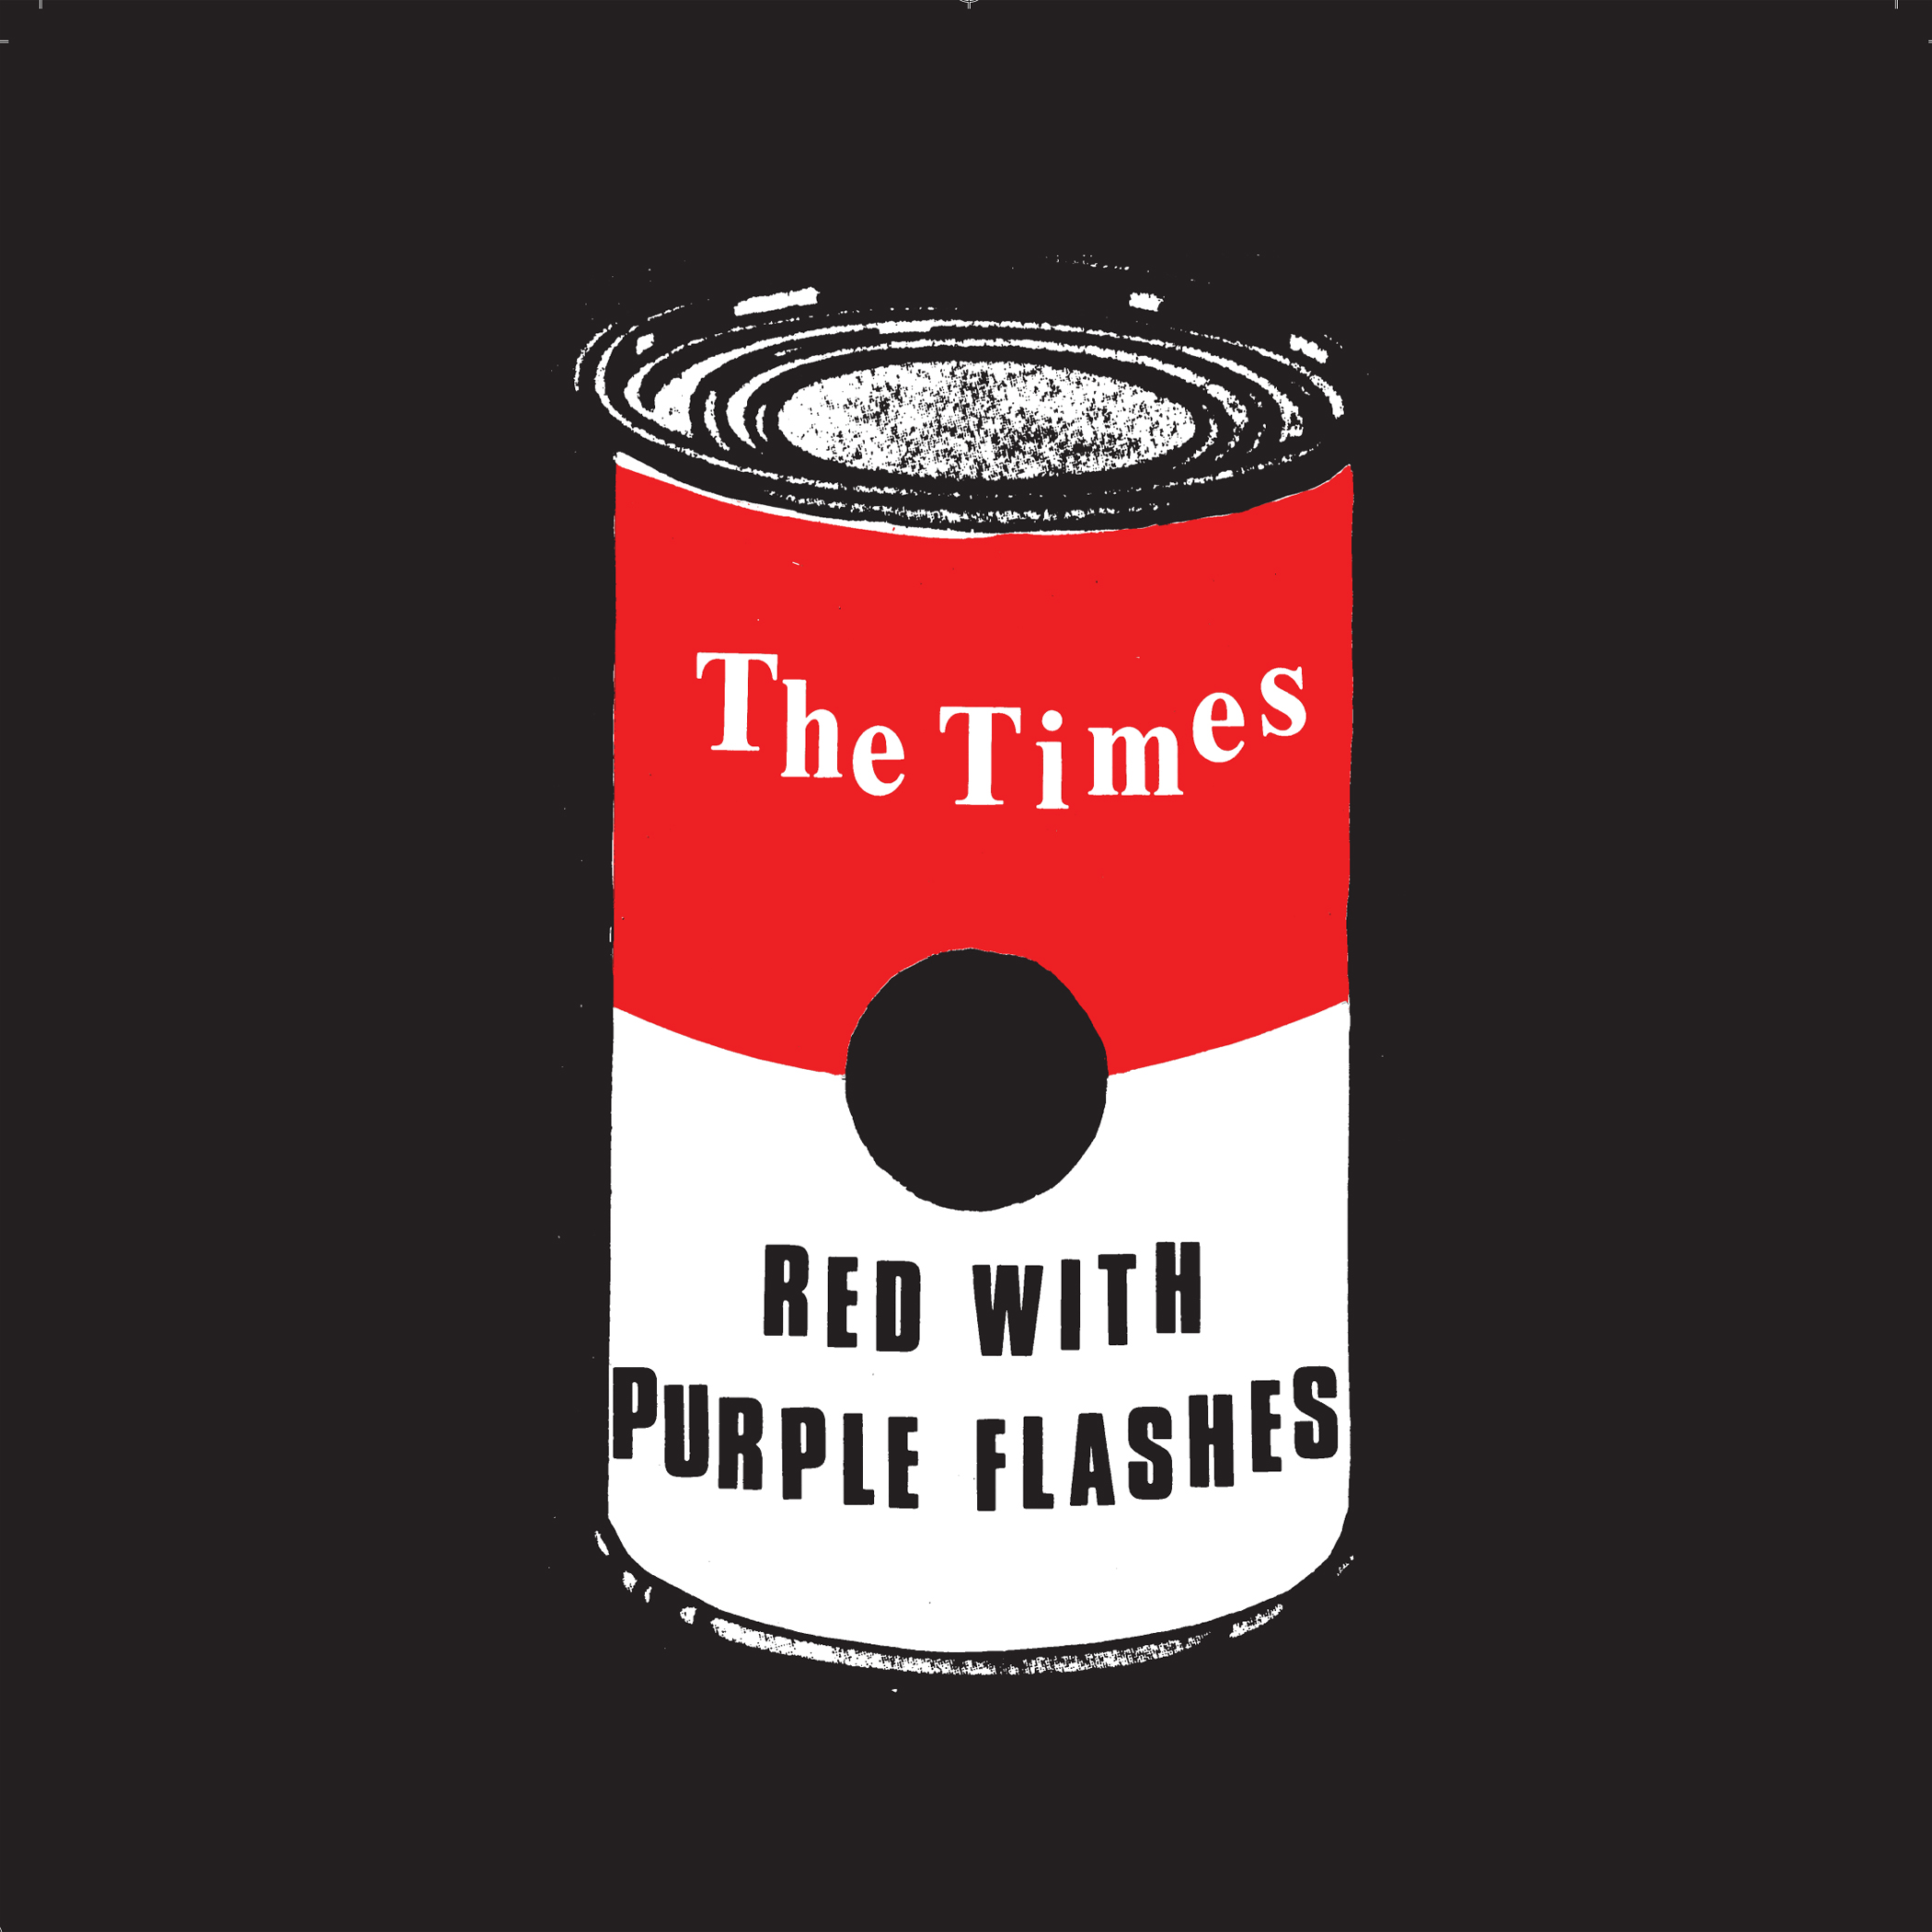 THE TIMES - Red With Purple Flashes 7